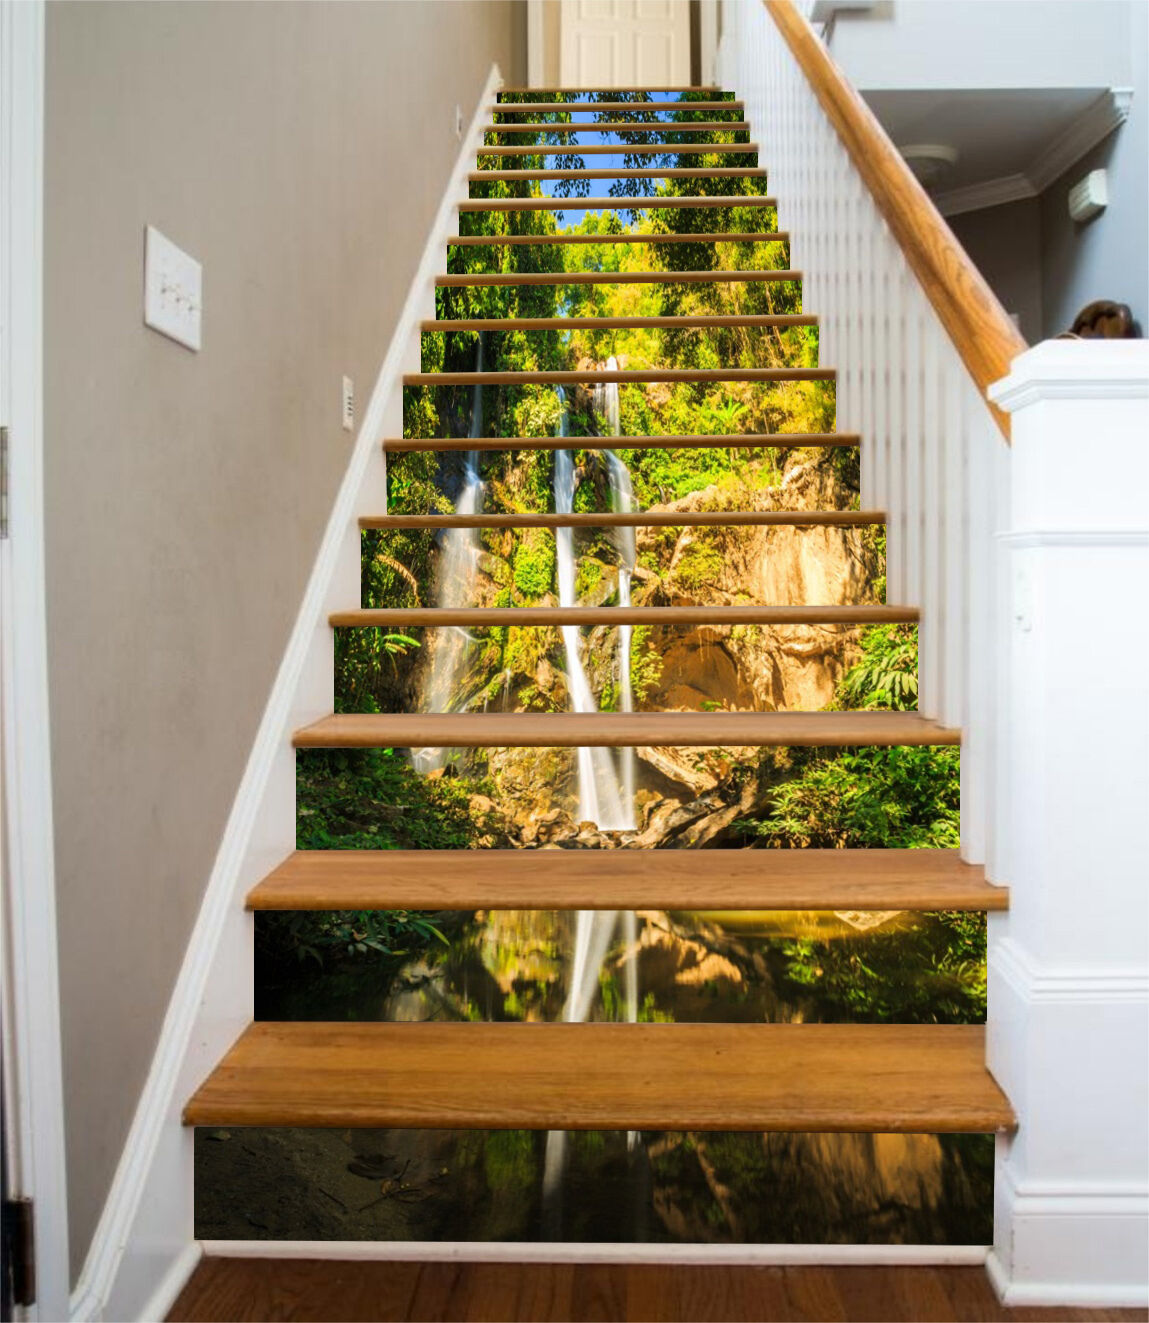 3D Nature Scenery 4 Stair Risers Decoration Photo Mural Vinyl Decal Wallpaper UK